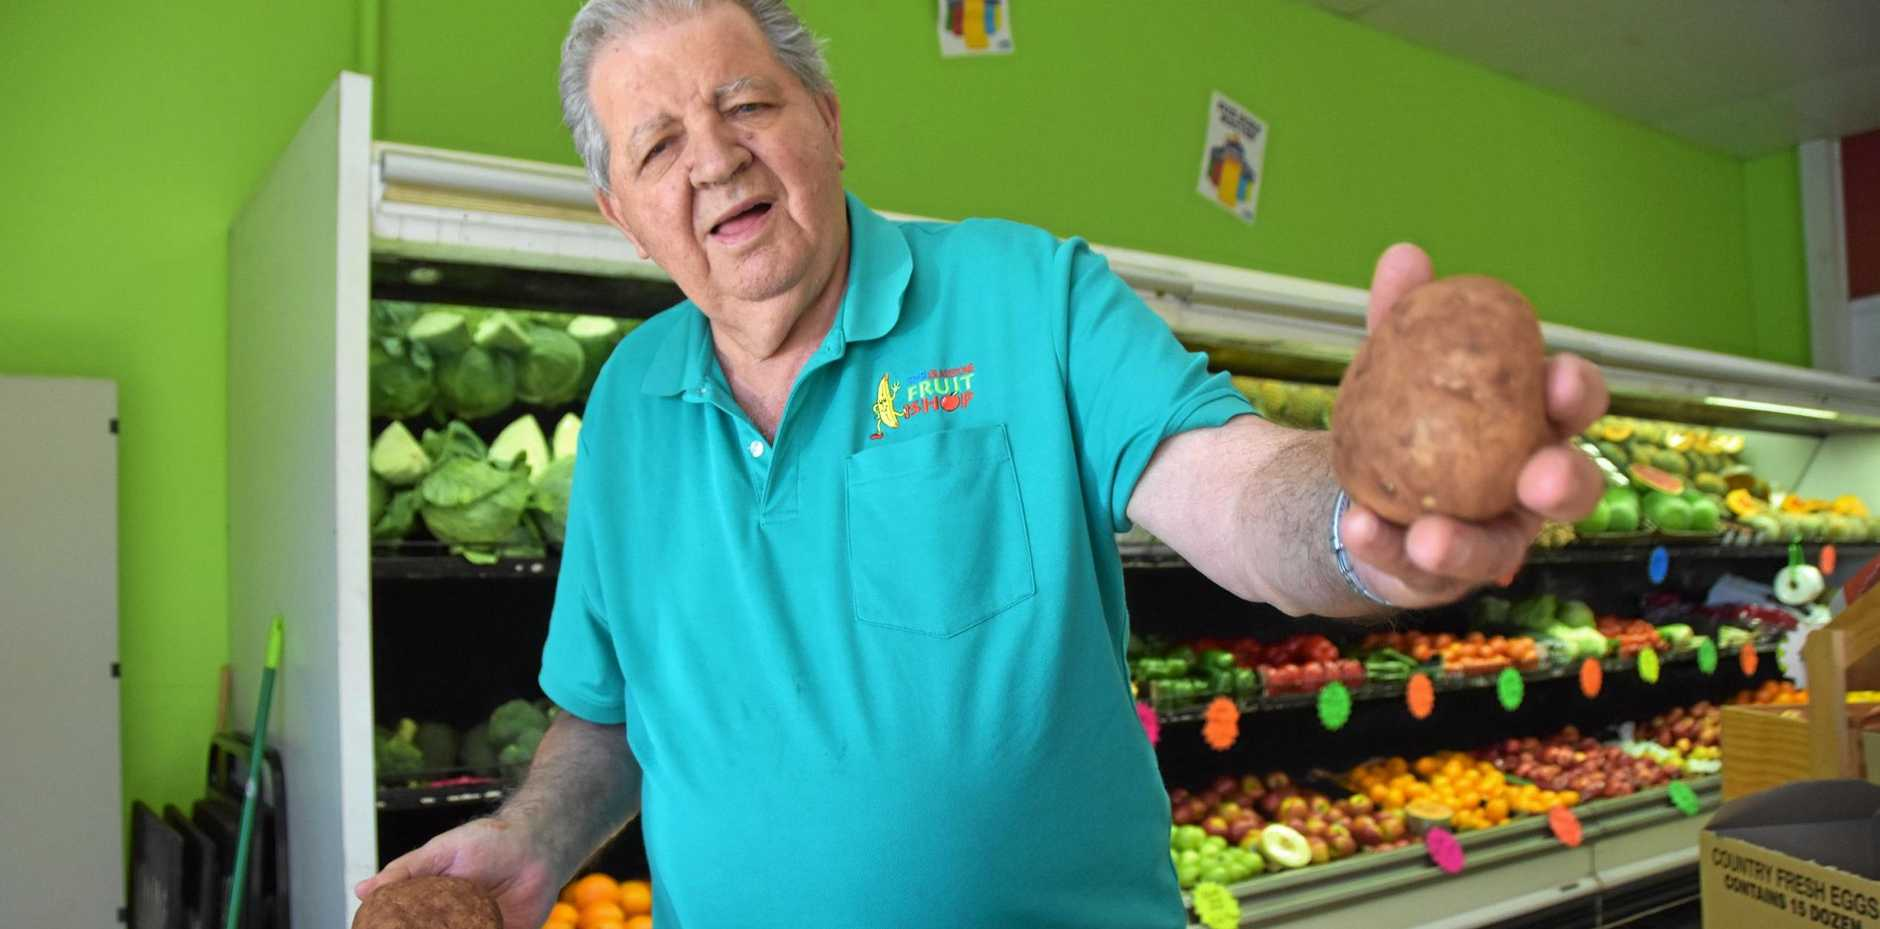 KEEPING SNUG: Phil McCormack owner of Gladstone Fruit Shop says potatoes and other root vegetables won't suffer like the rest of us in the winter chill.